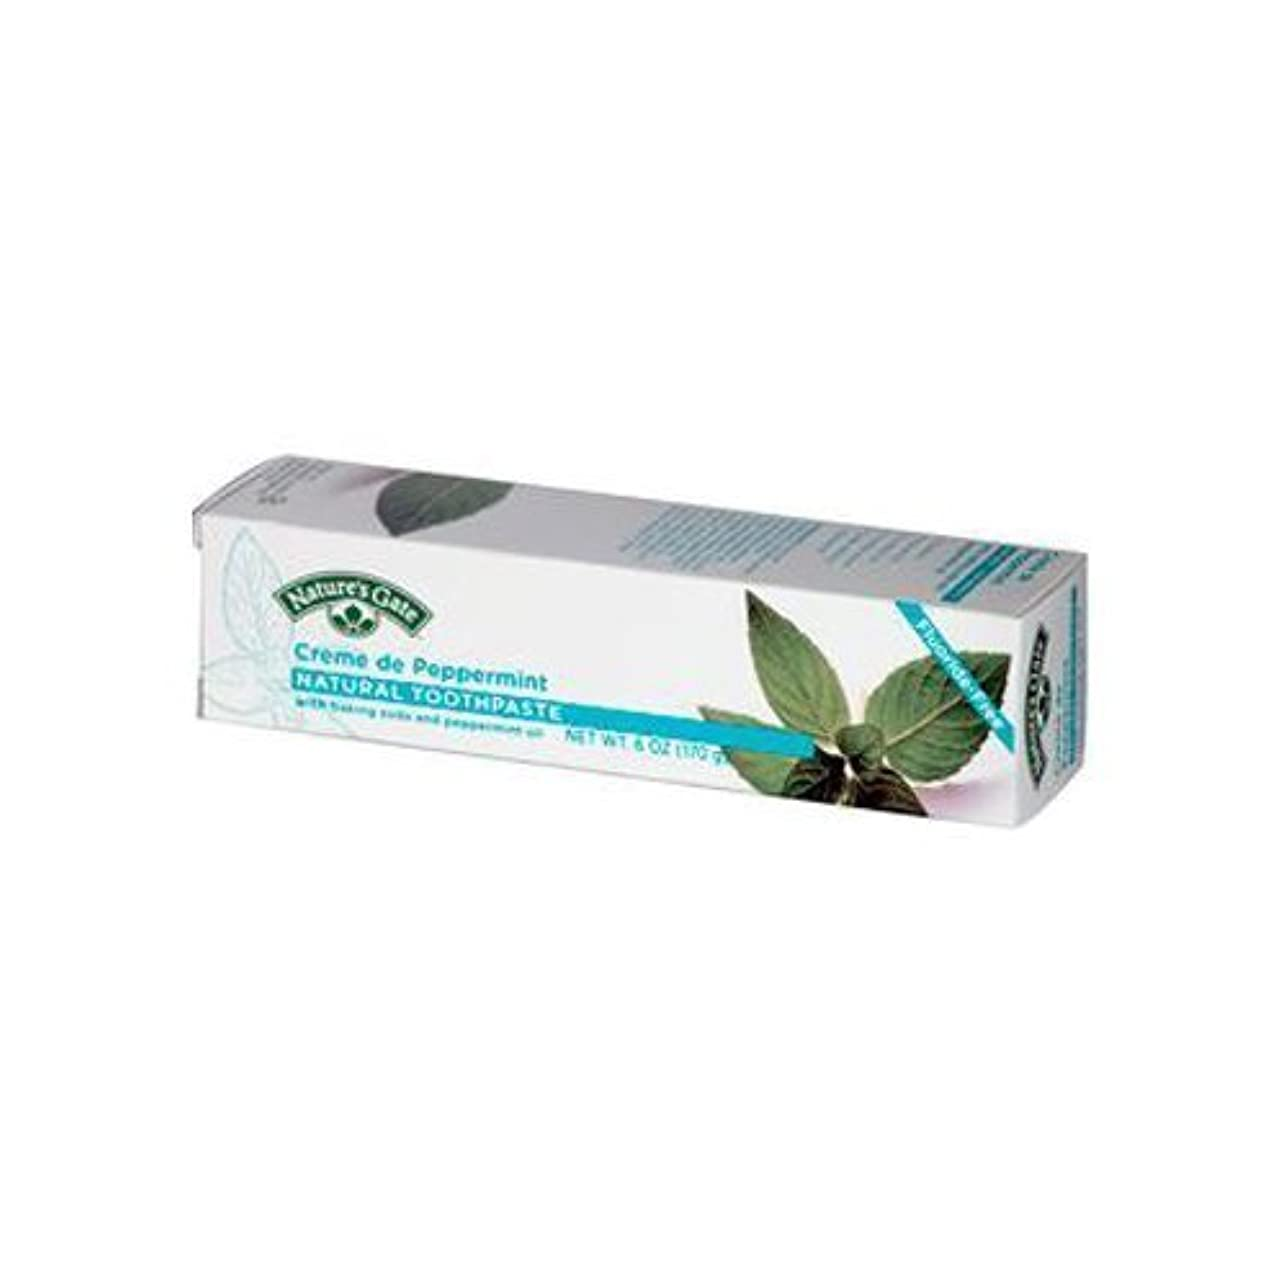 人工清める自治的Natures Gate Natural Toothpaste Cr?me De Peppermint - 6 oz - Case of 6 by NATURE'S GATE [並行輸入品]